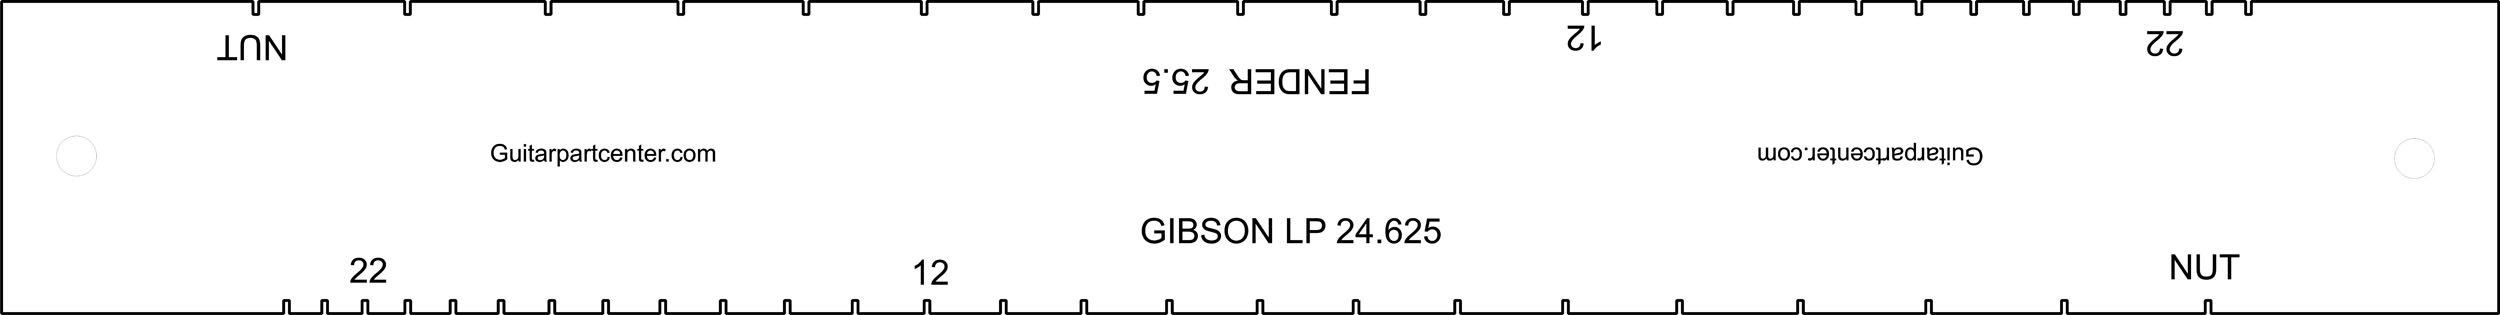 Dual Scal Fingerboard Slotting Template - 25.5'' & 24.625'' by GPC